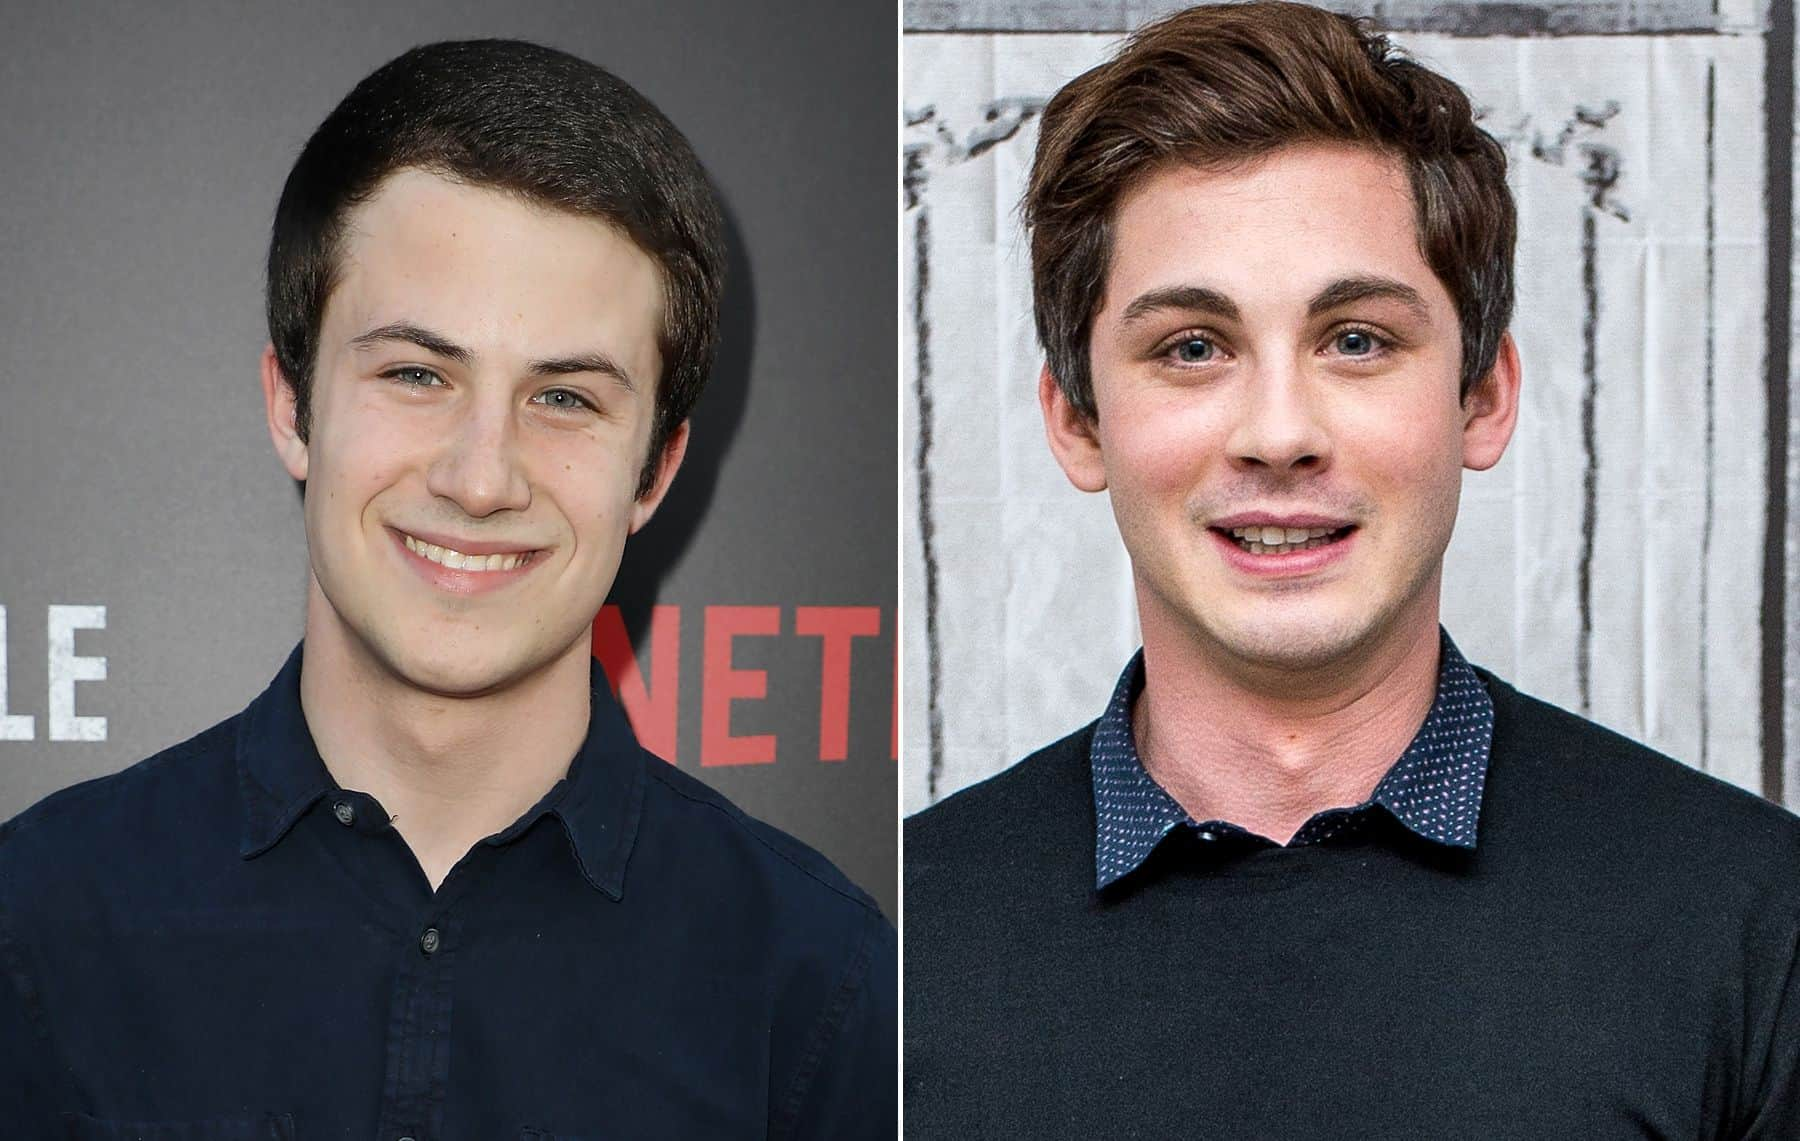 Dylan Minnette and Logan Lerman